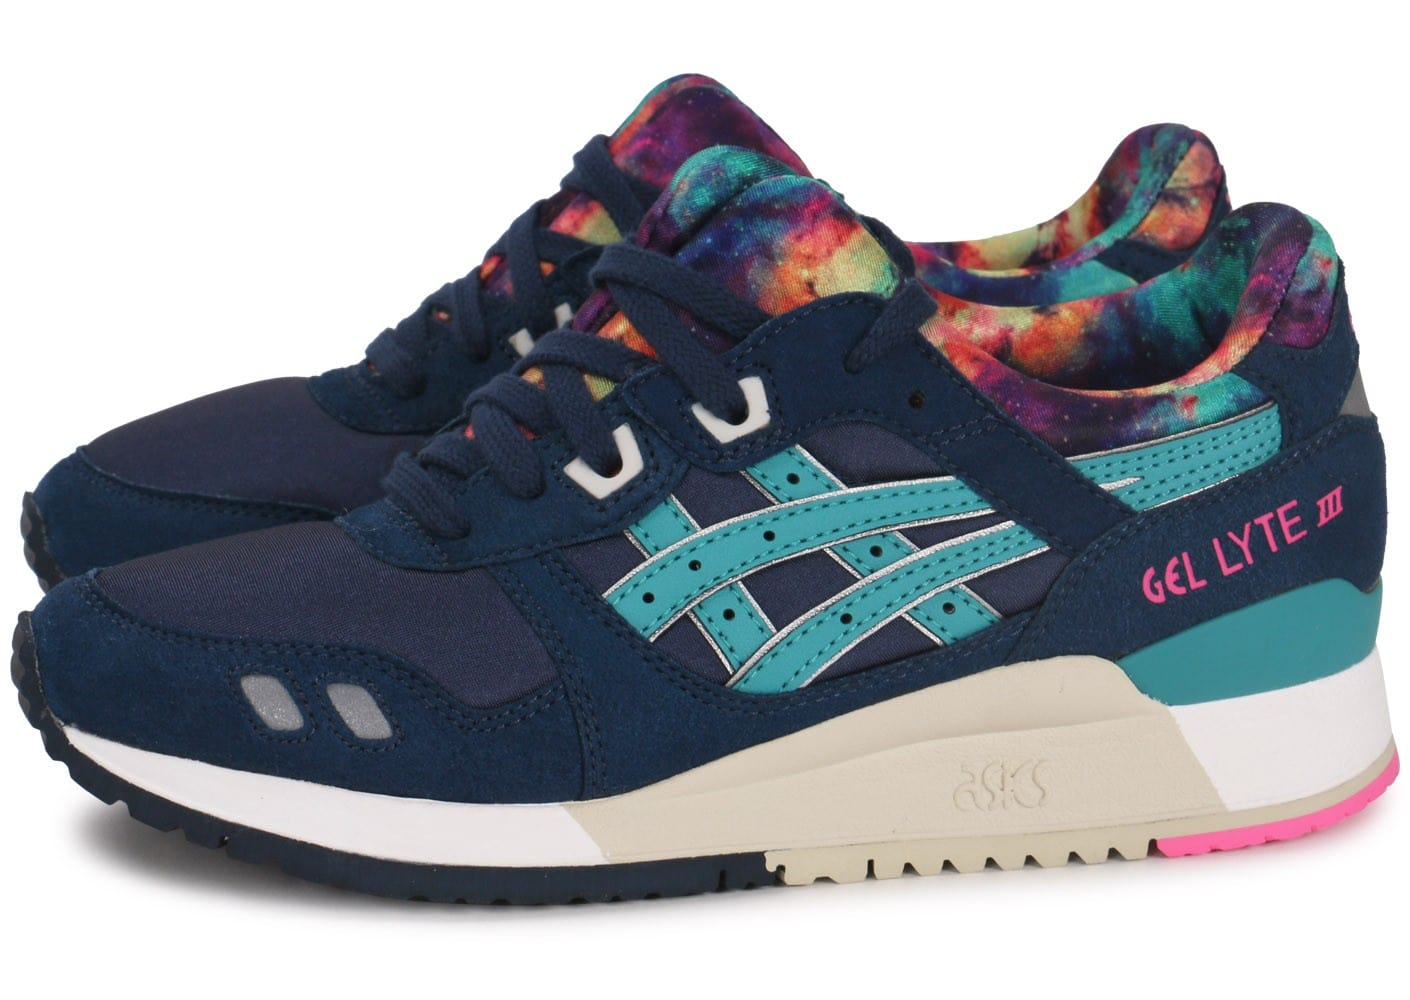 9a7777ce012 chaussure asics gel lyte 3 homme